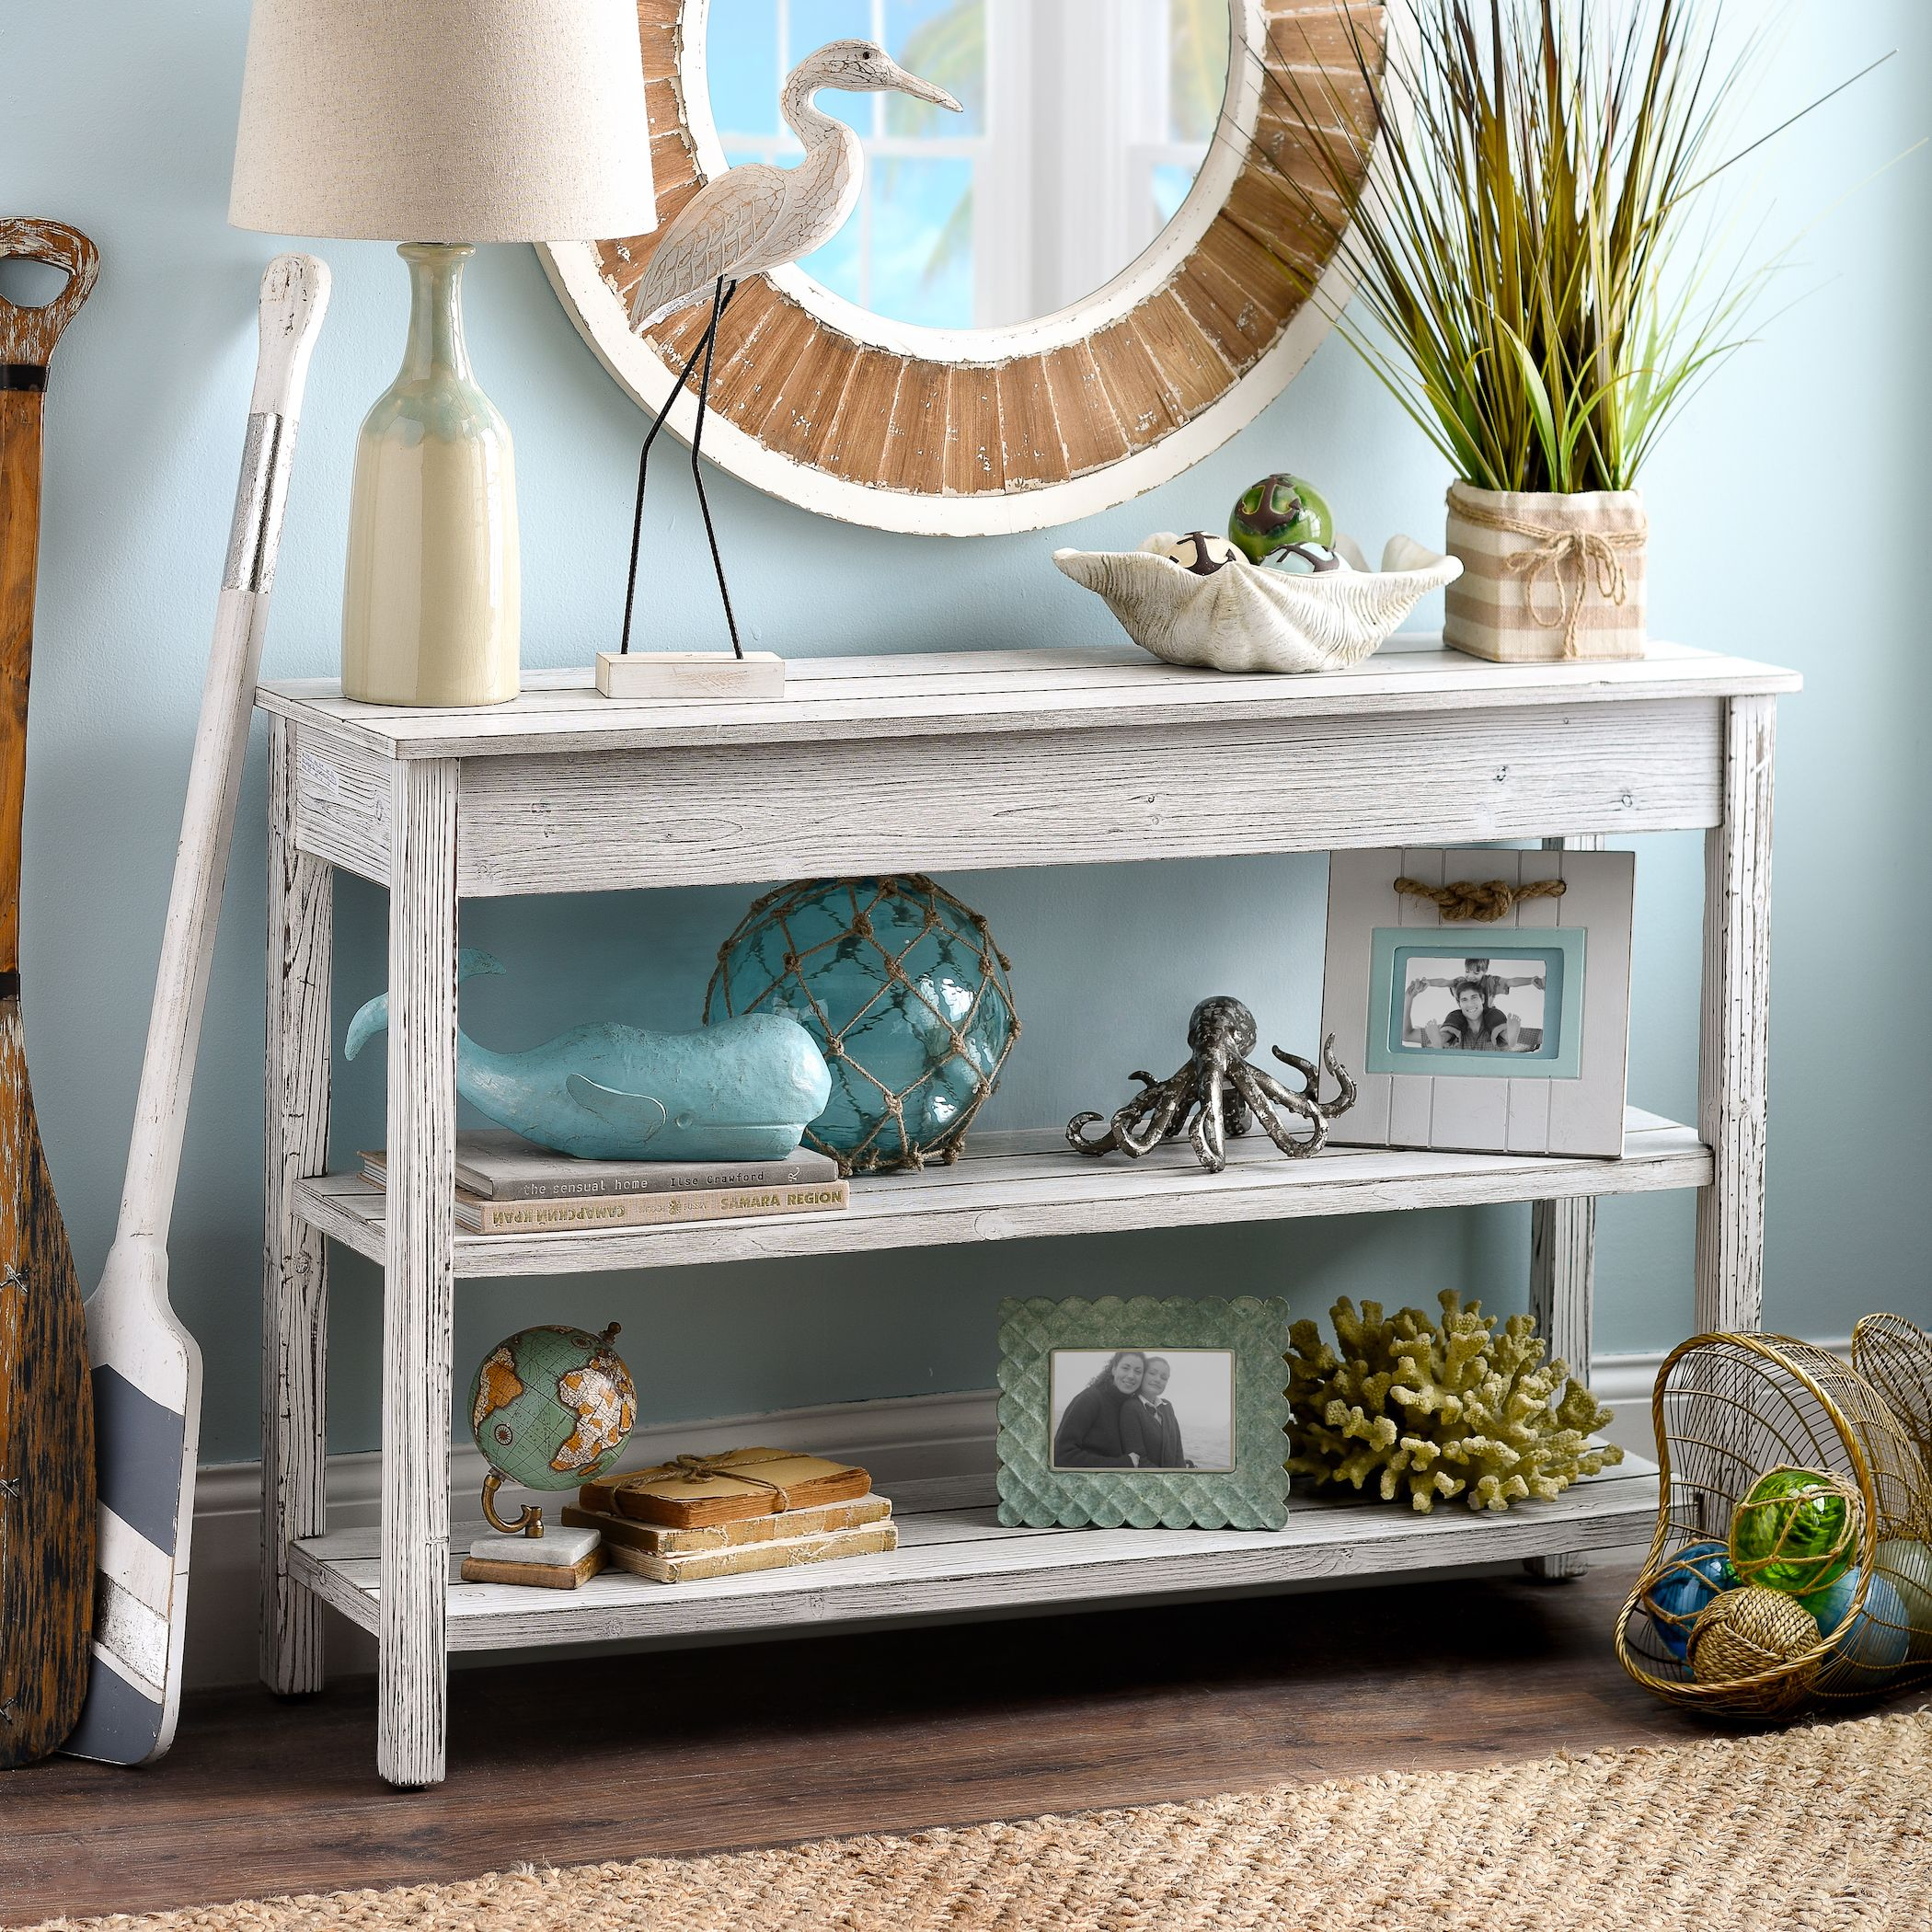 Get Seaside Style With These Coastal Console Table